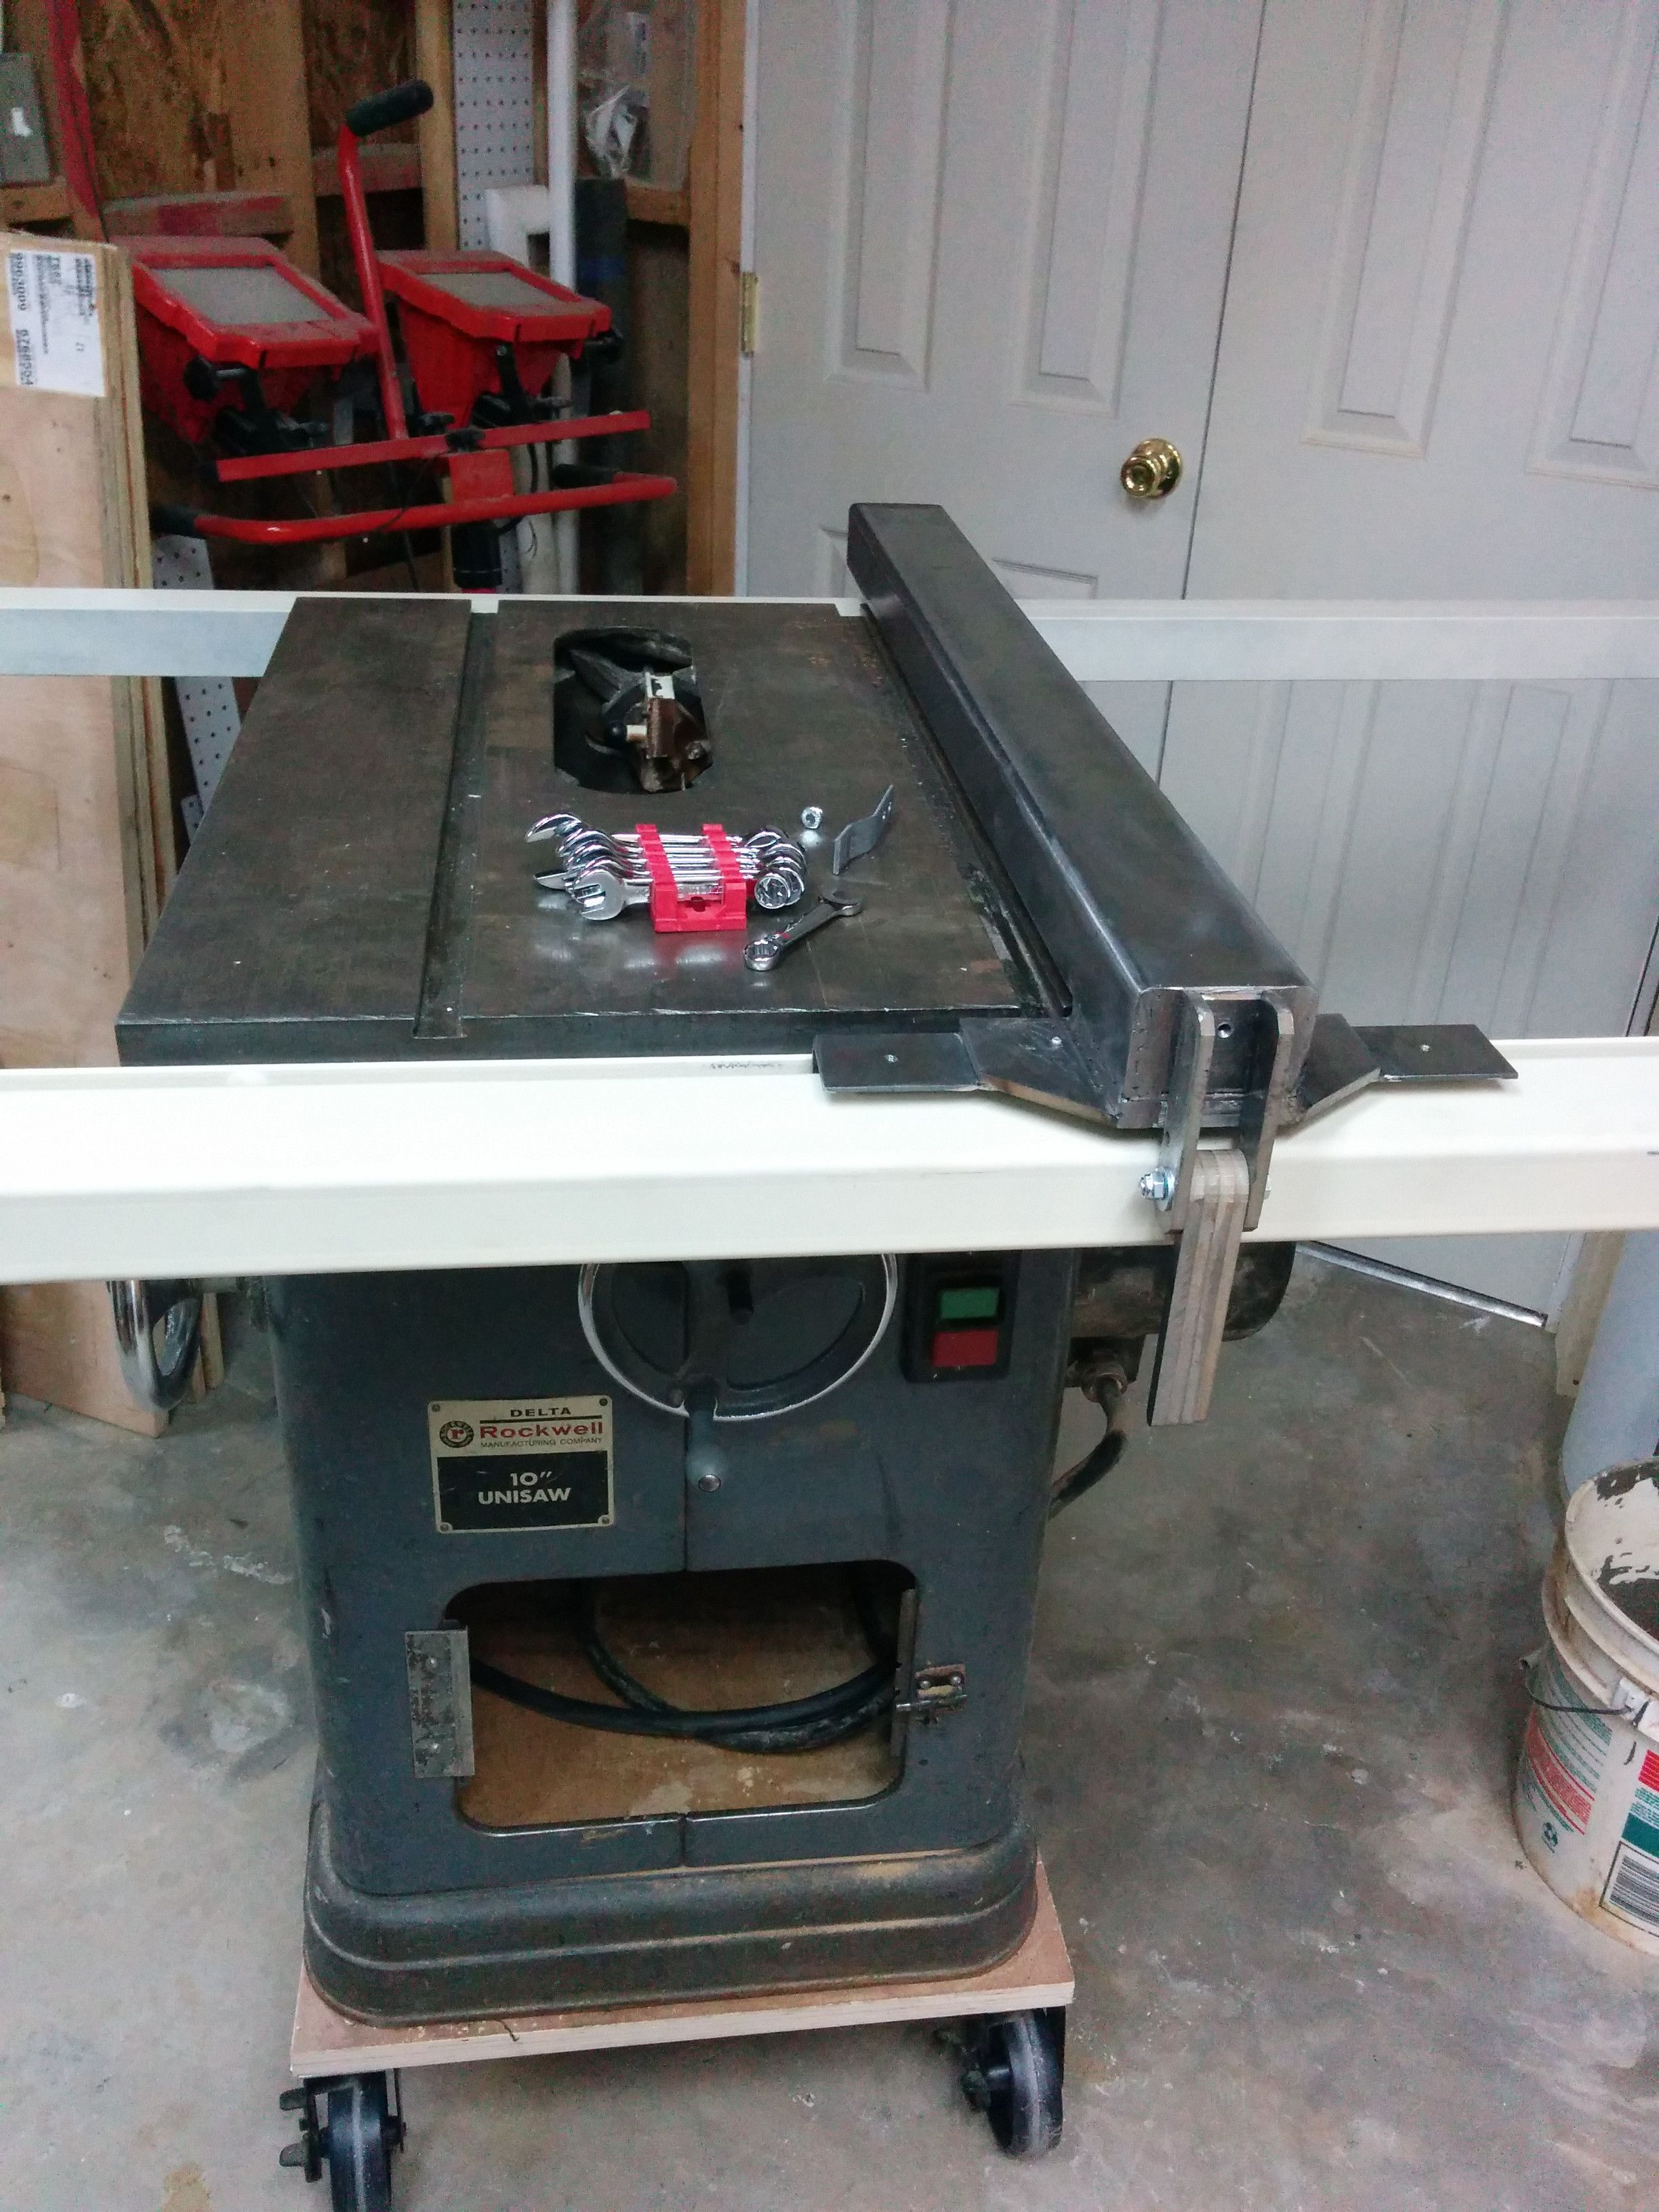 I Fabricated A Biesemeyer Style T Square Fence For My Newly Acquired Delta Unisaw Table Saw Fence Table Saw Building A Fence